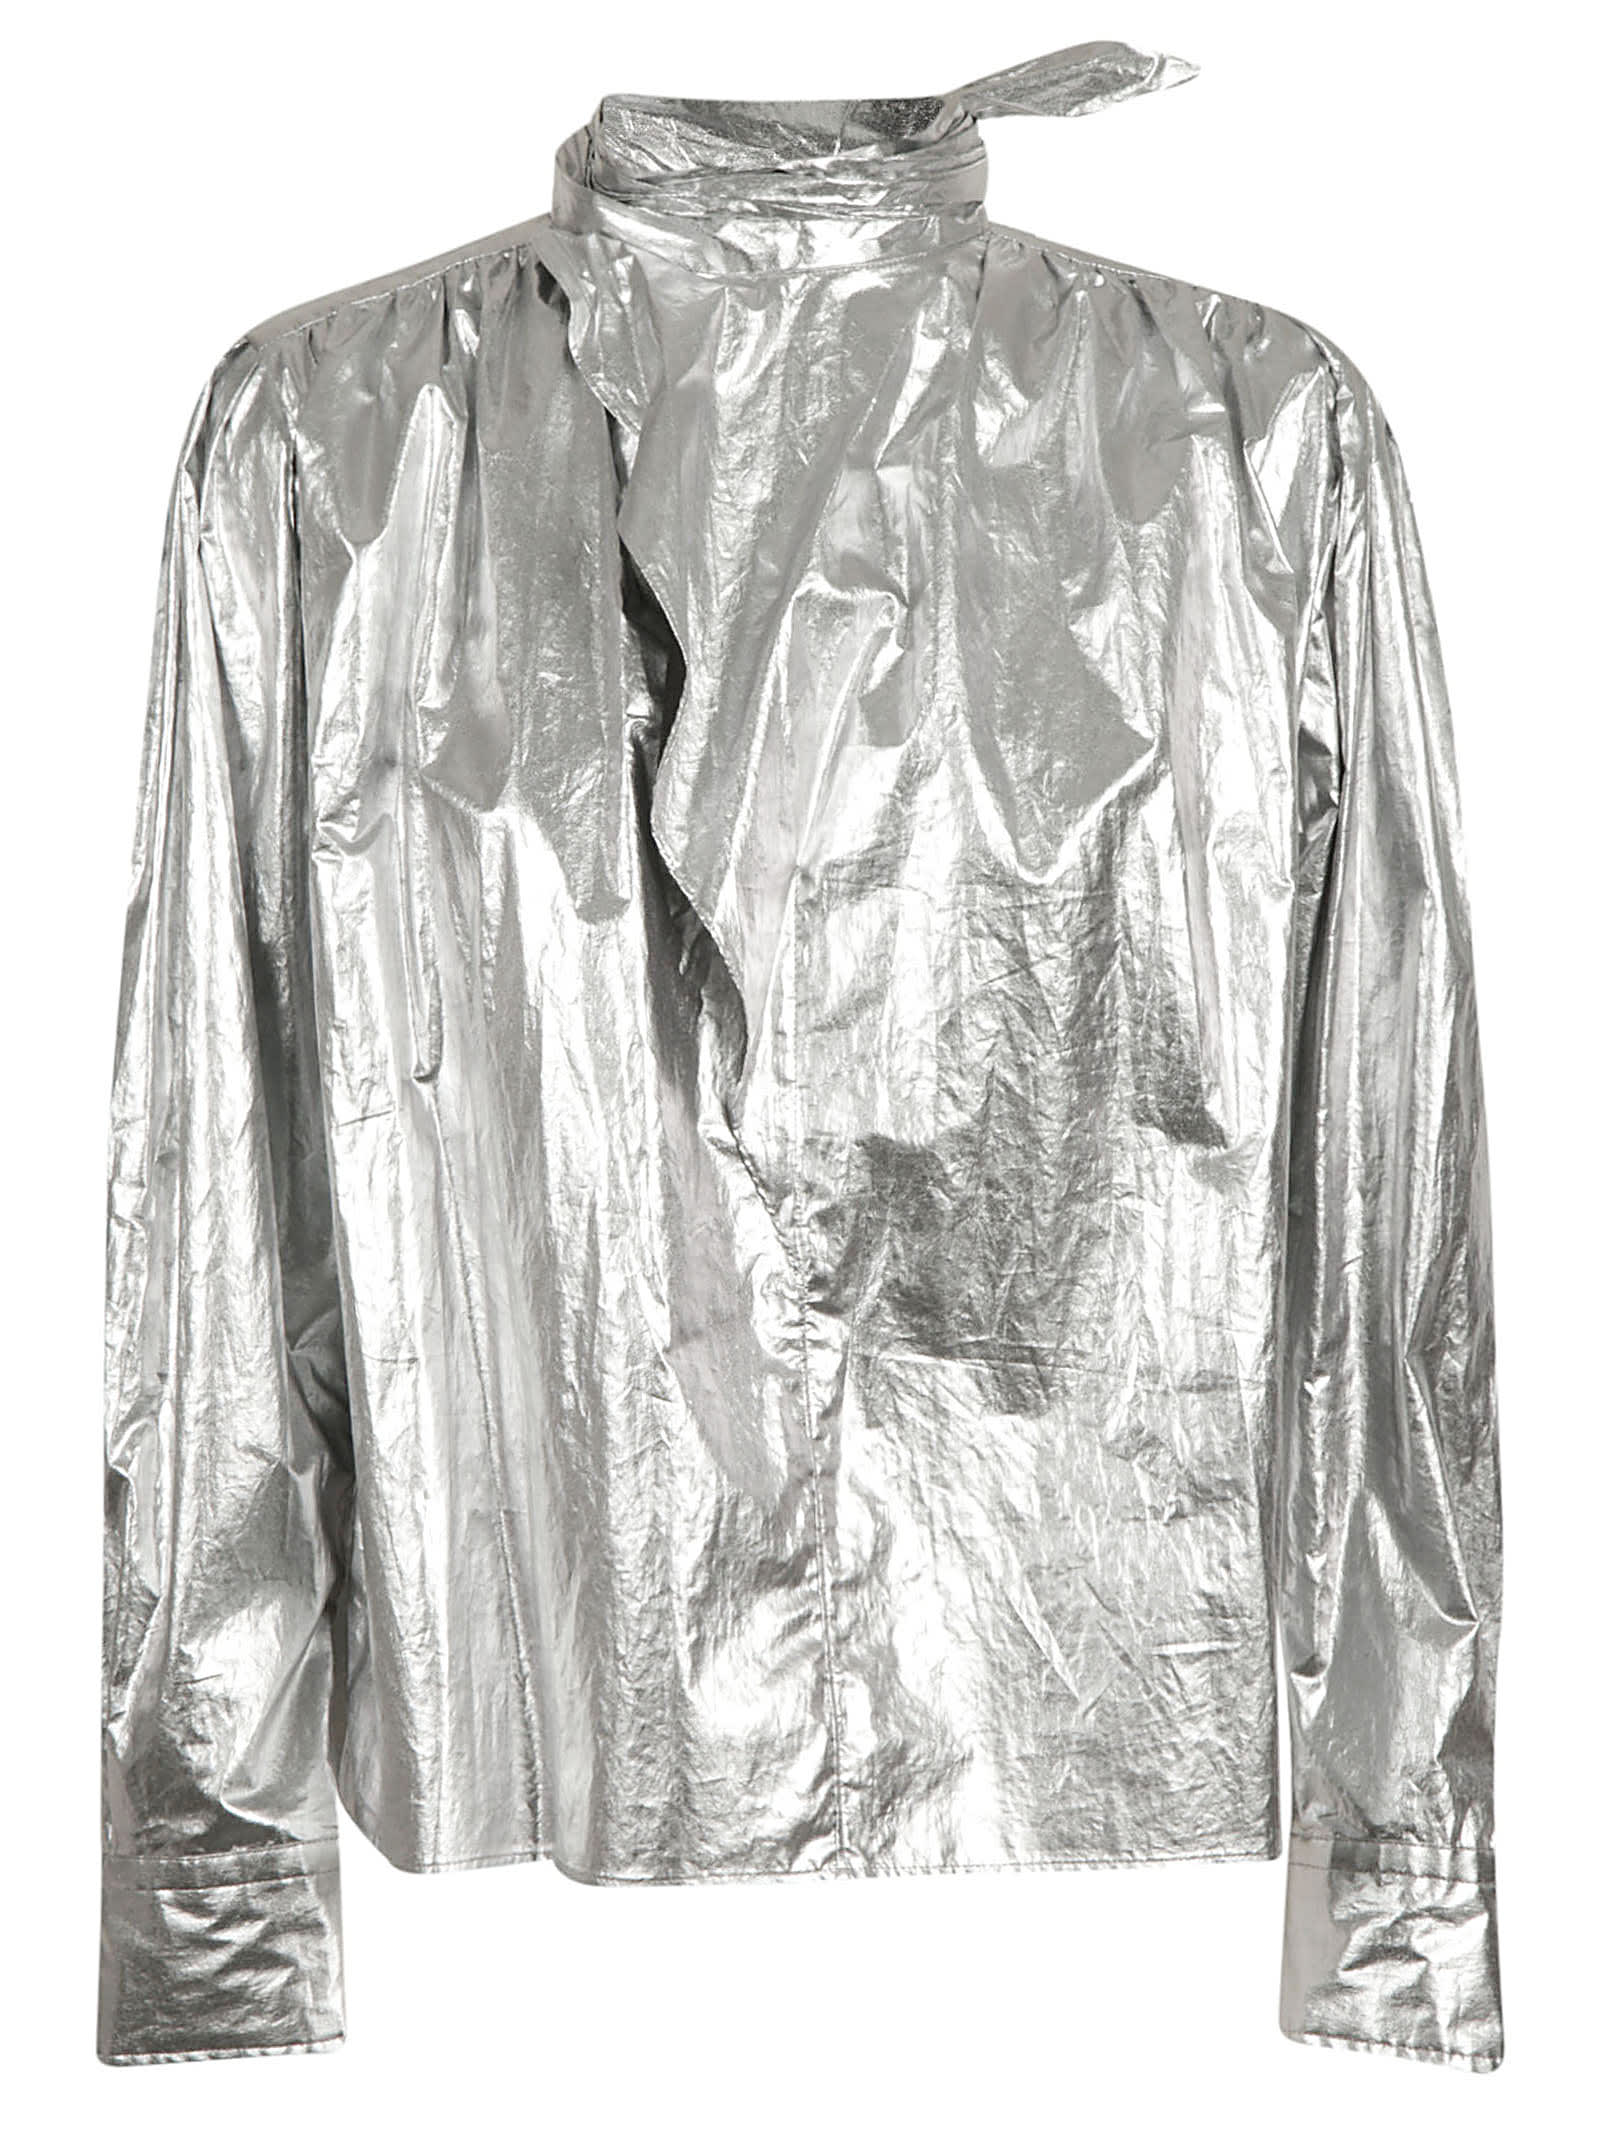 Isabel Marant Metallic Coated Sports Jacket